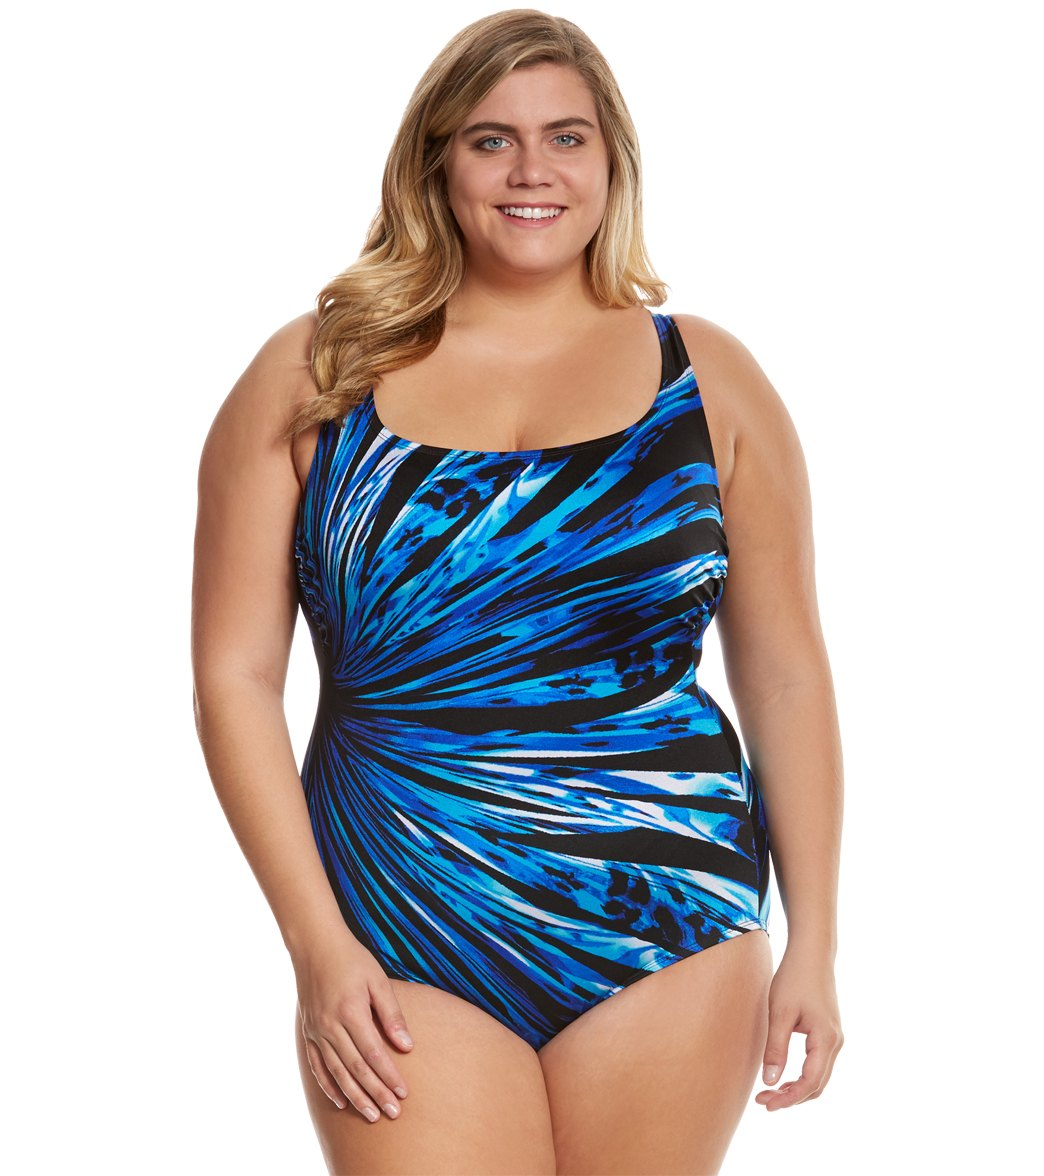 Sundial Patterned Plus Size Swimwear